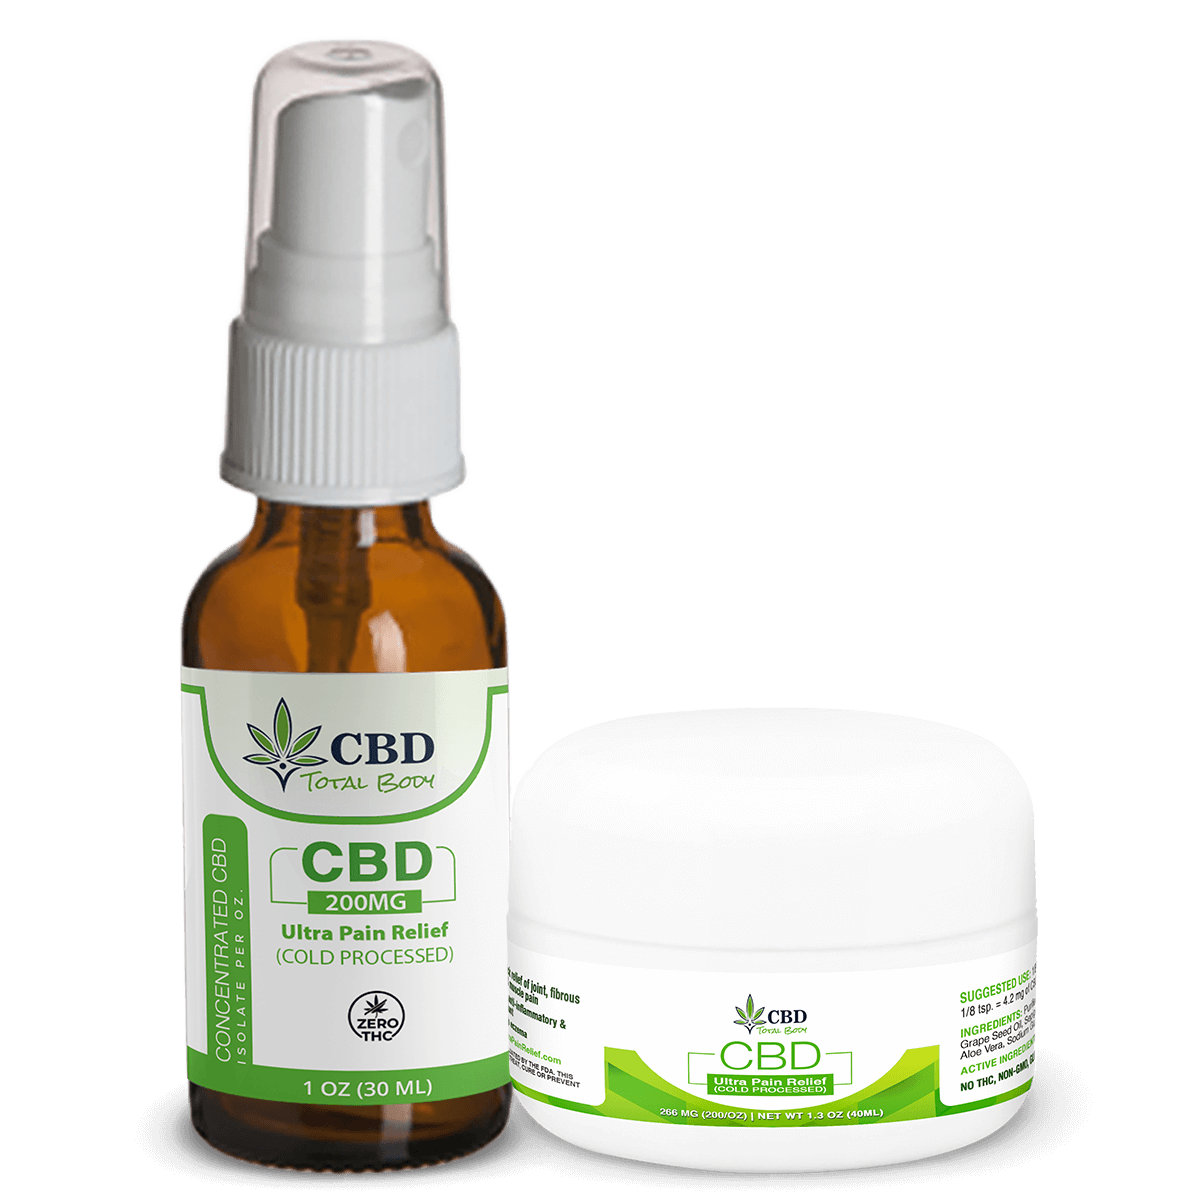 CBD Ultra Pain Relief Cream Cold Processed for Pain Relief and Inflammation